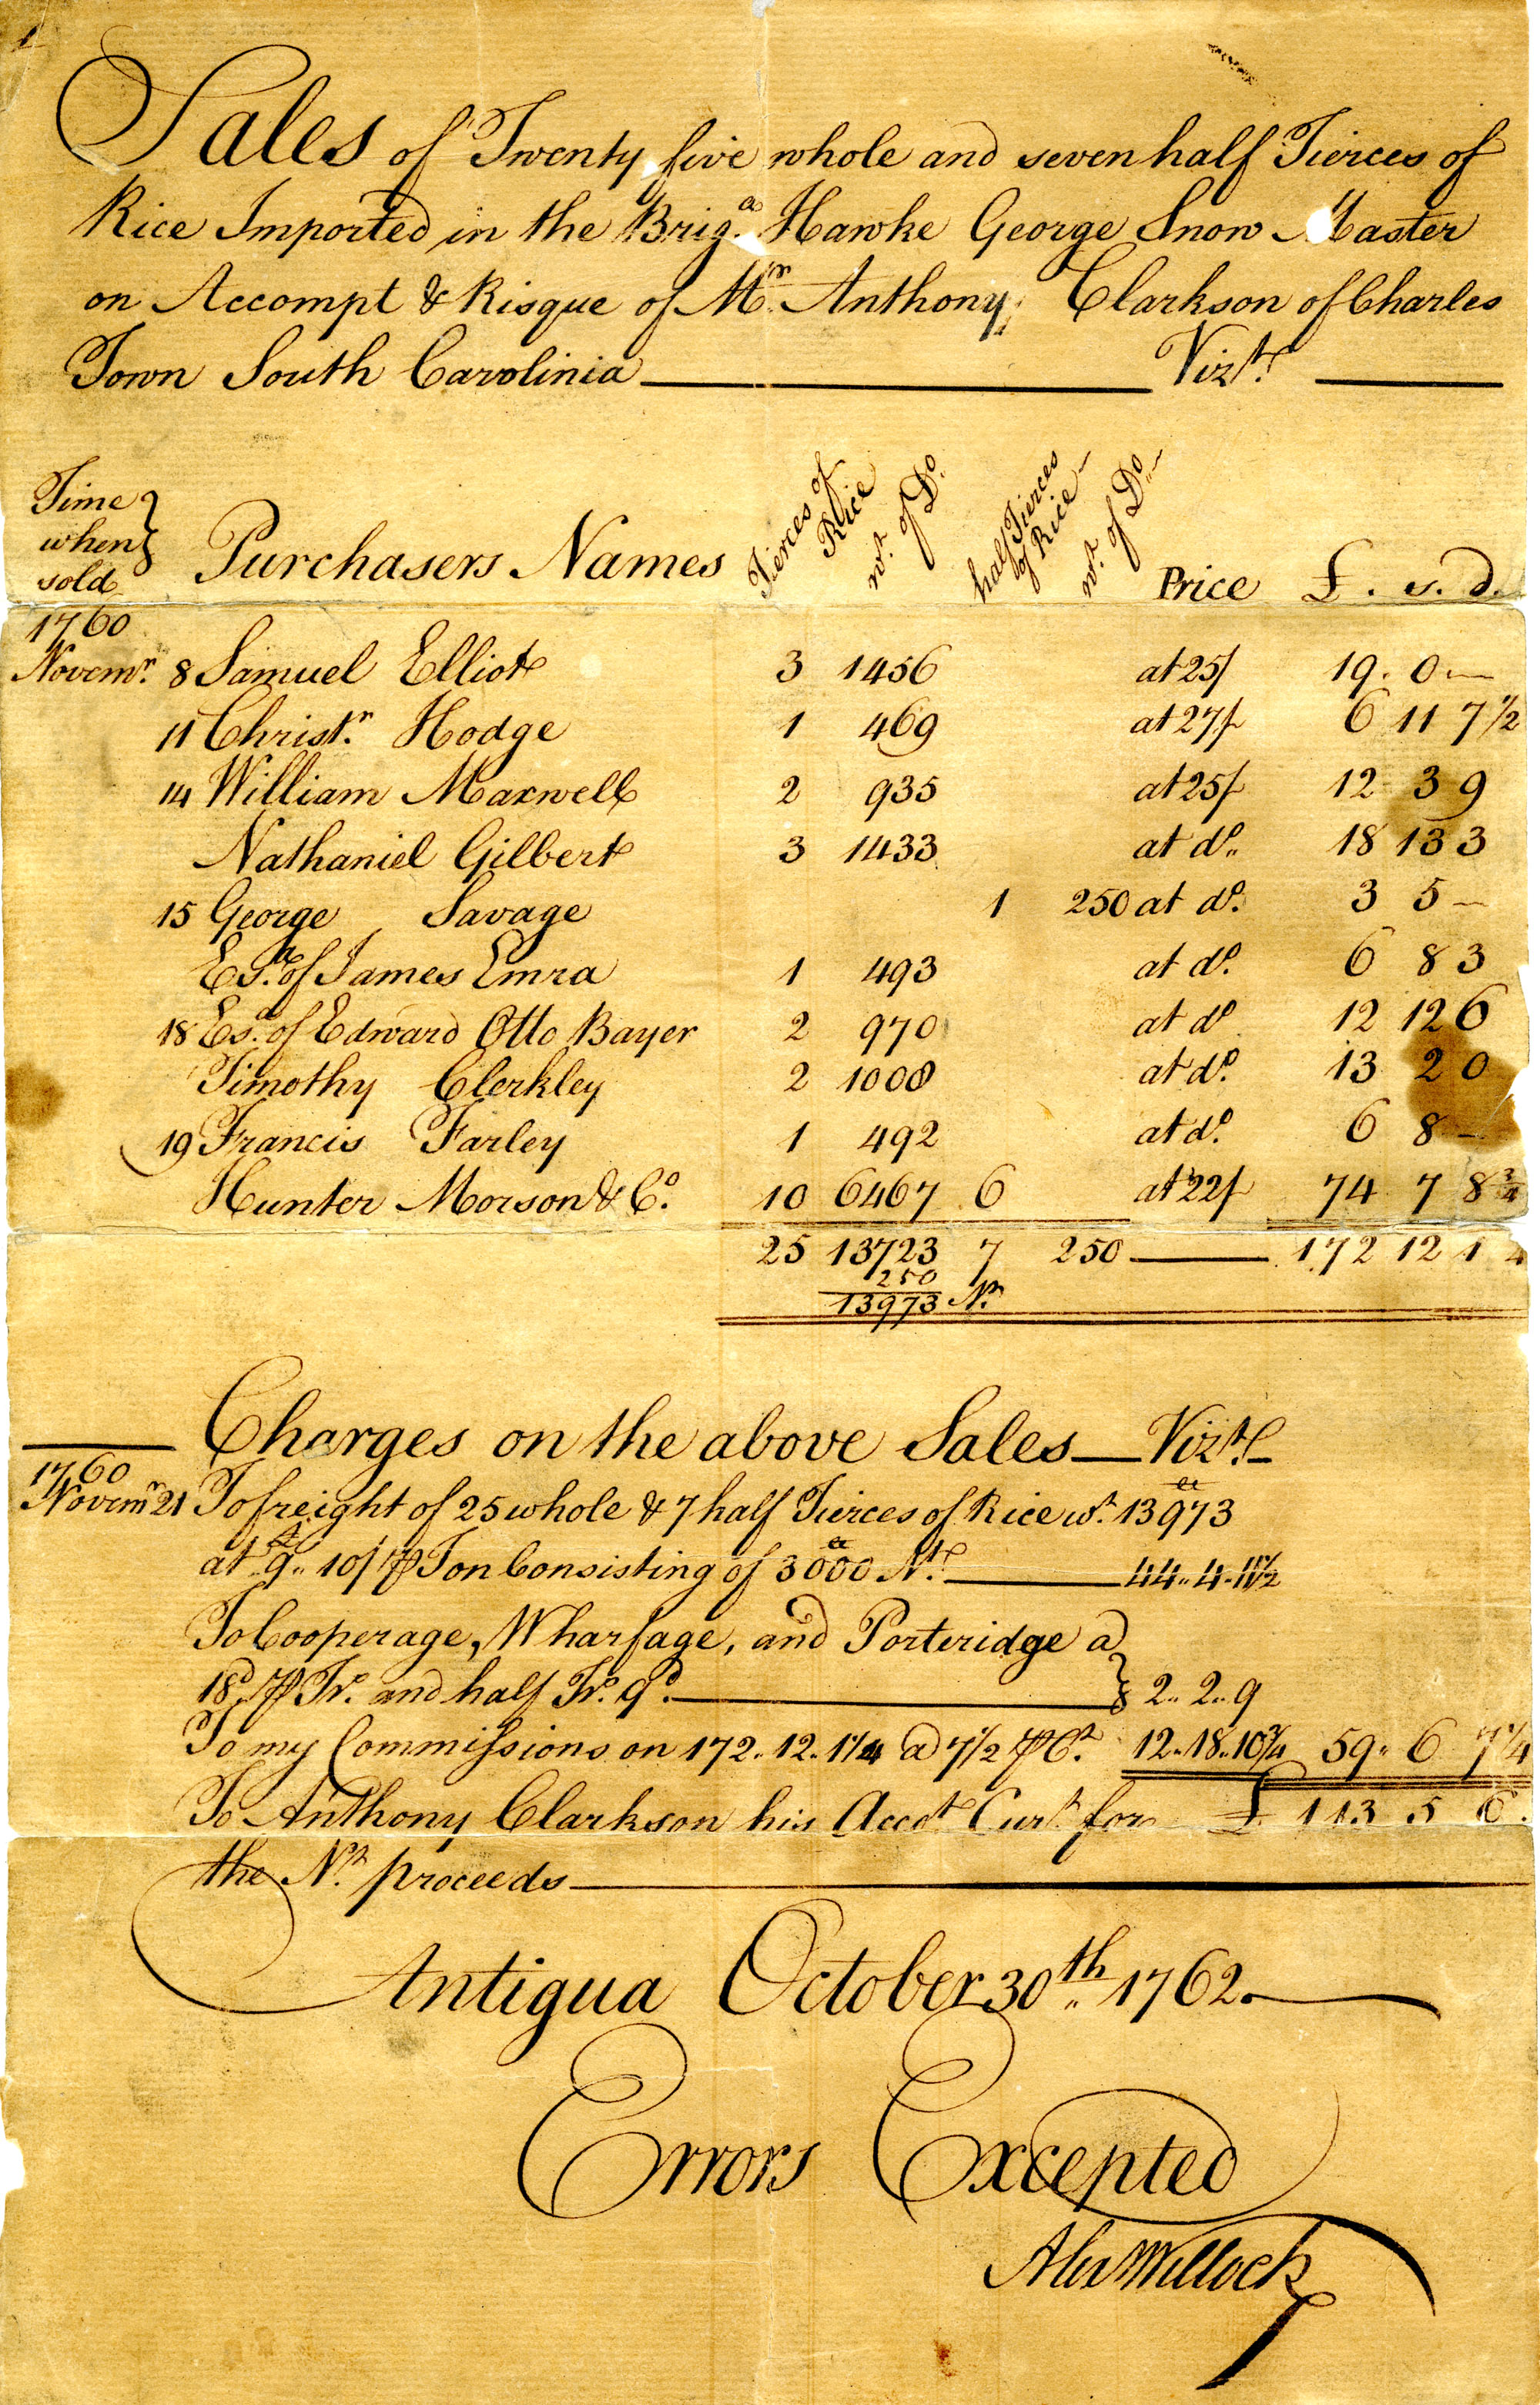 Invoice of rice sales for Anthony Clarkson, 1762 Oct. 30.